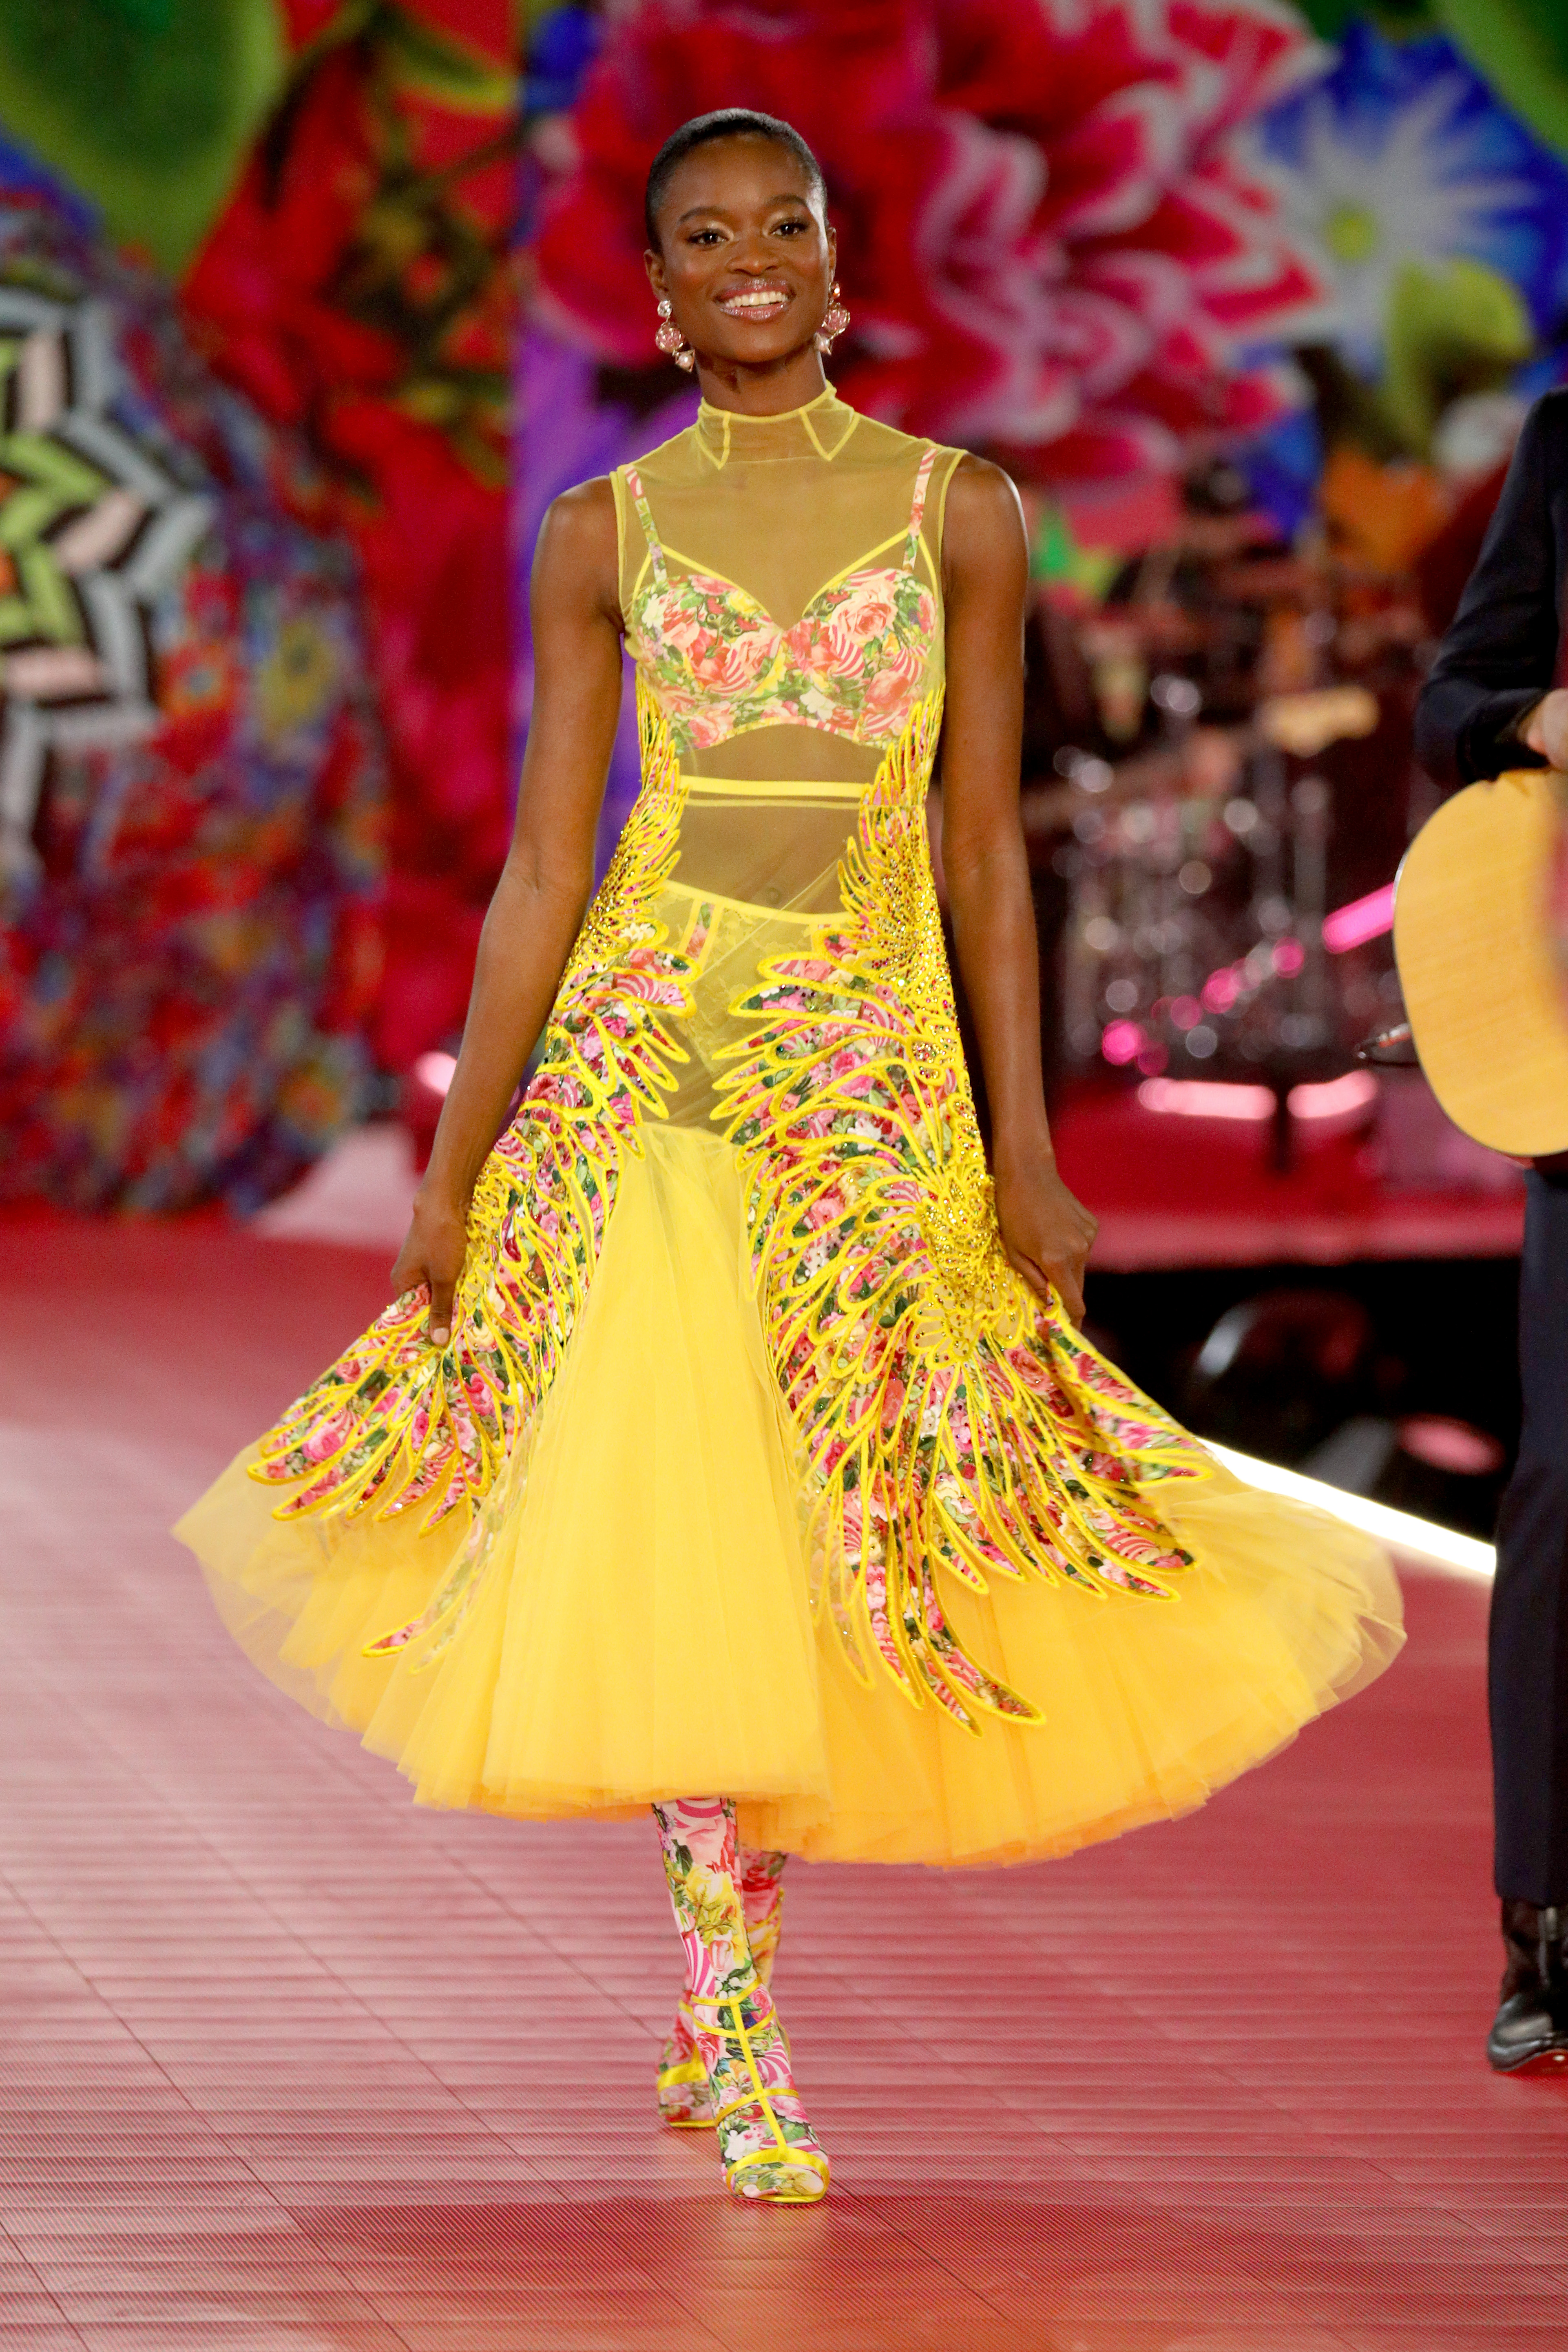 Mayowa Nicholas walks the runway wearing Swarovski in the 2018 Victoria's Secret Fashion Show at Pier 94 on November 8, 2018, in New York City. (Getty Images)